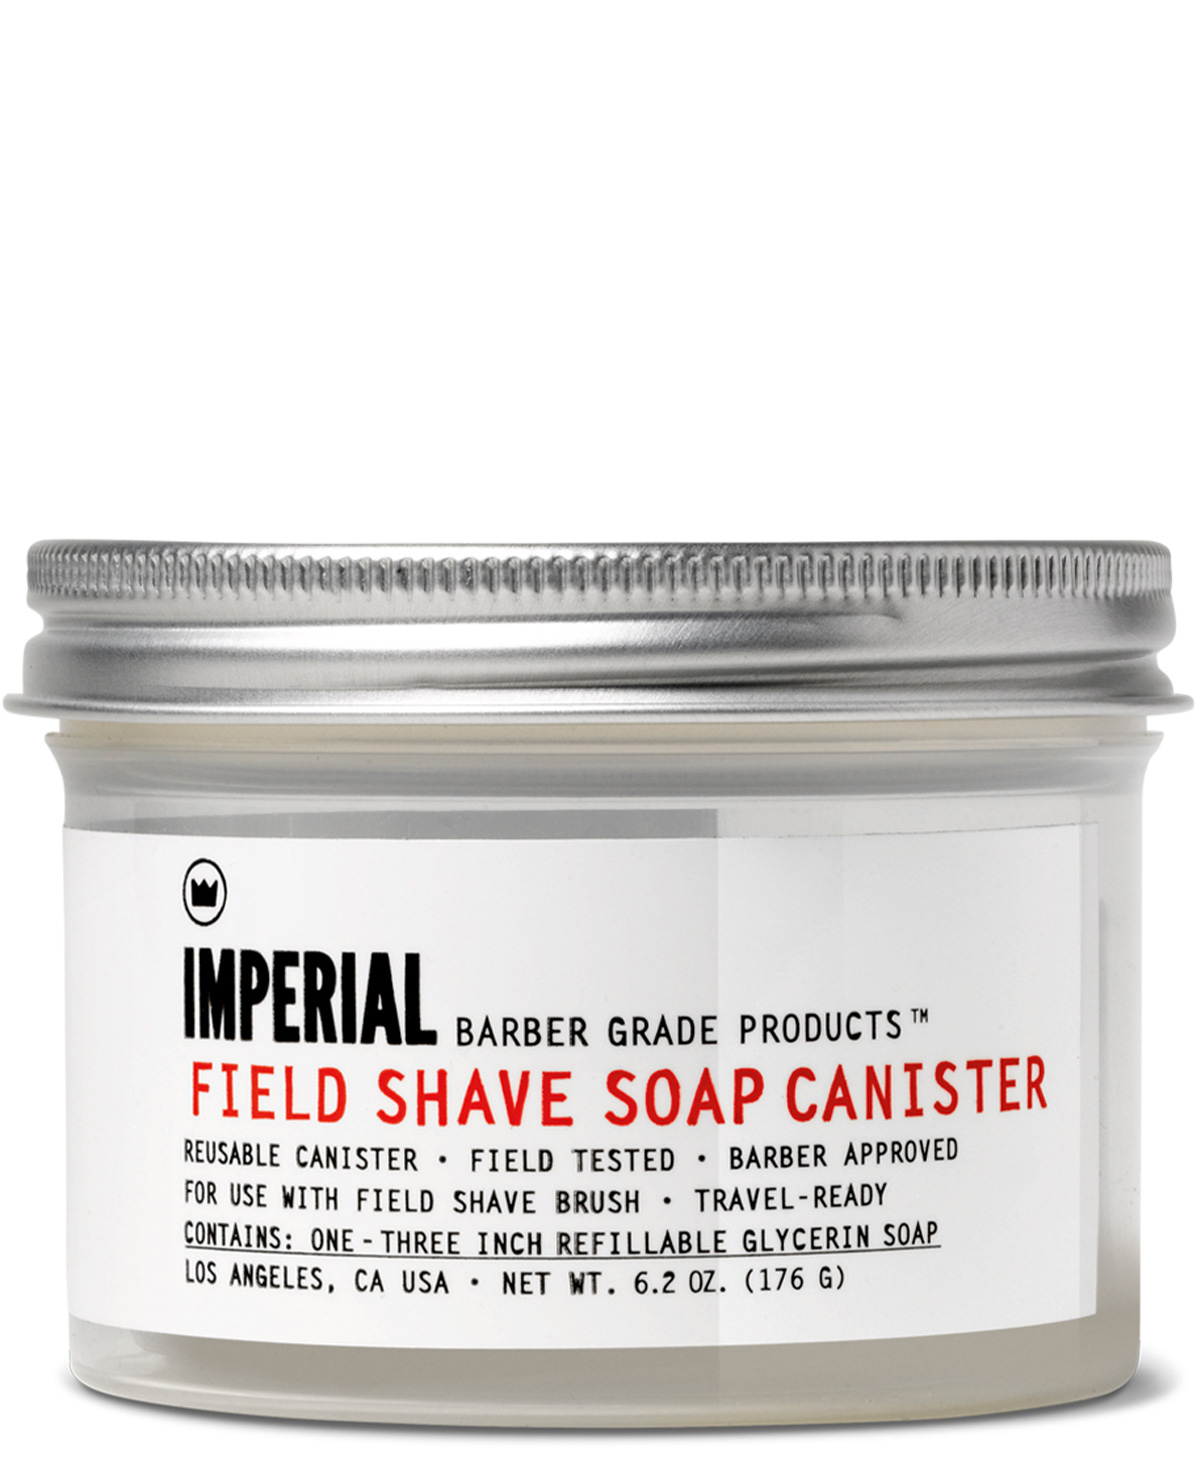 Imperial Field Shave Soap Canister inkl.Soap 176g